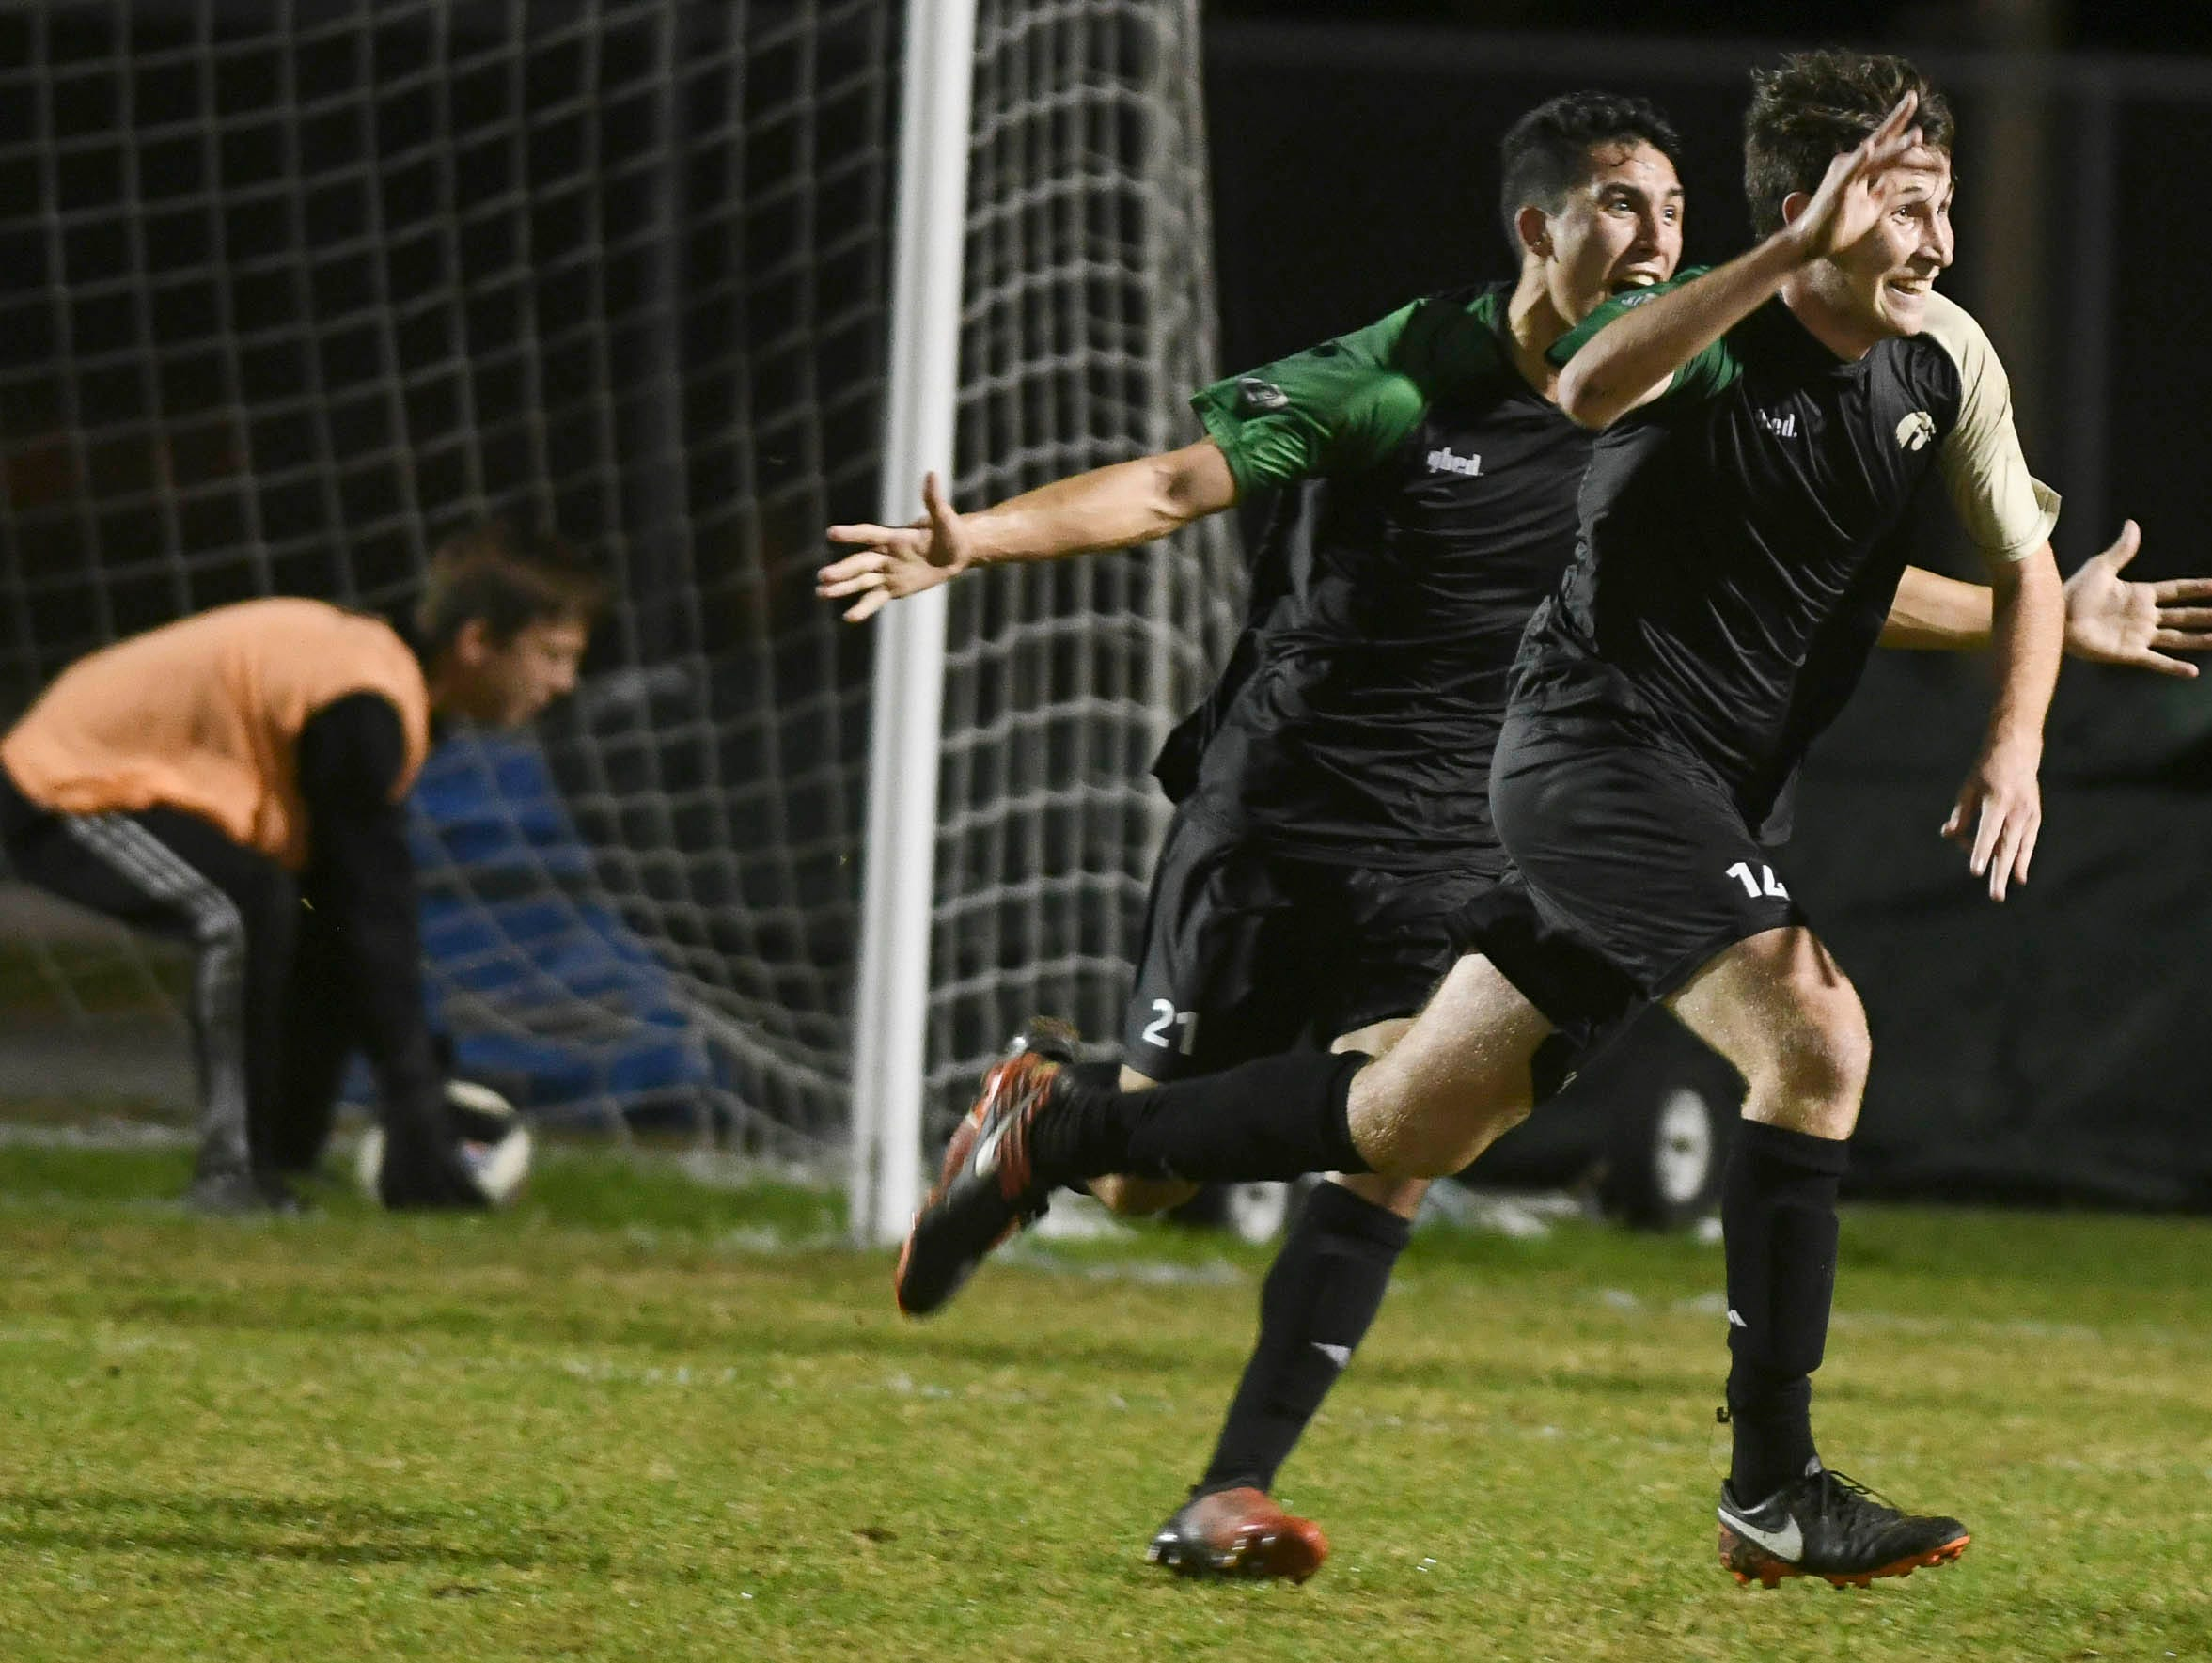 Patrick Murtha and Stephen McHale of Viera celebrate Murtha's goal during Friday's Class 4A, District 6 championship game against Melbourne.